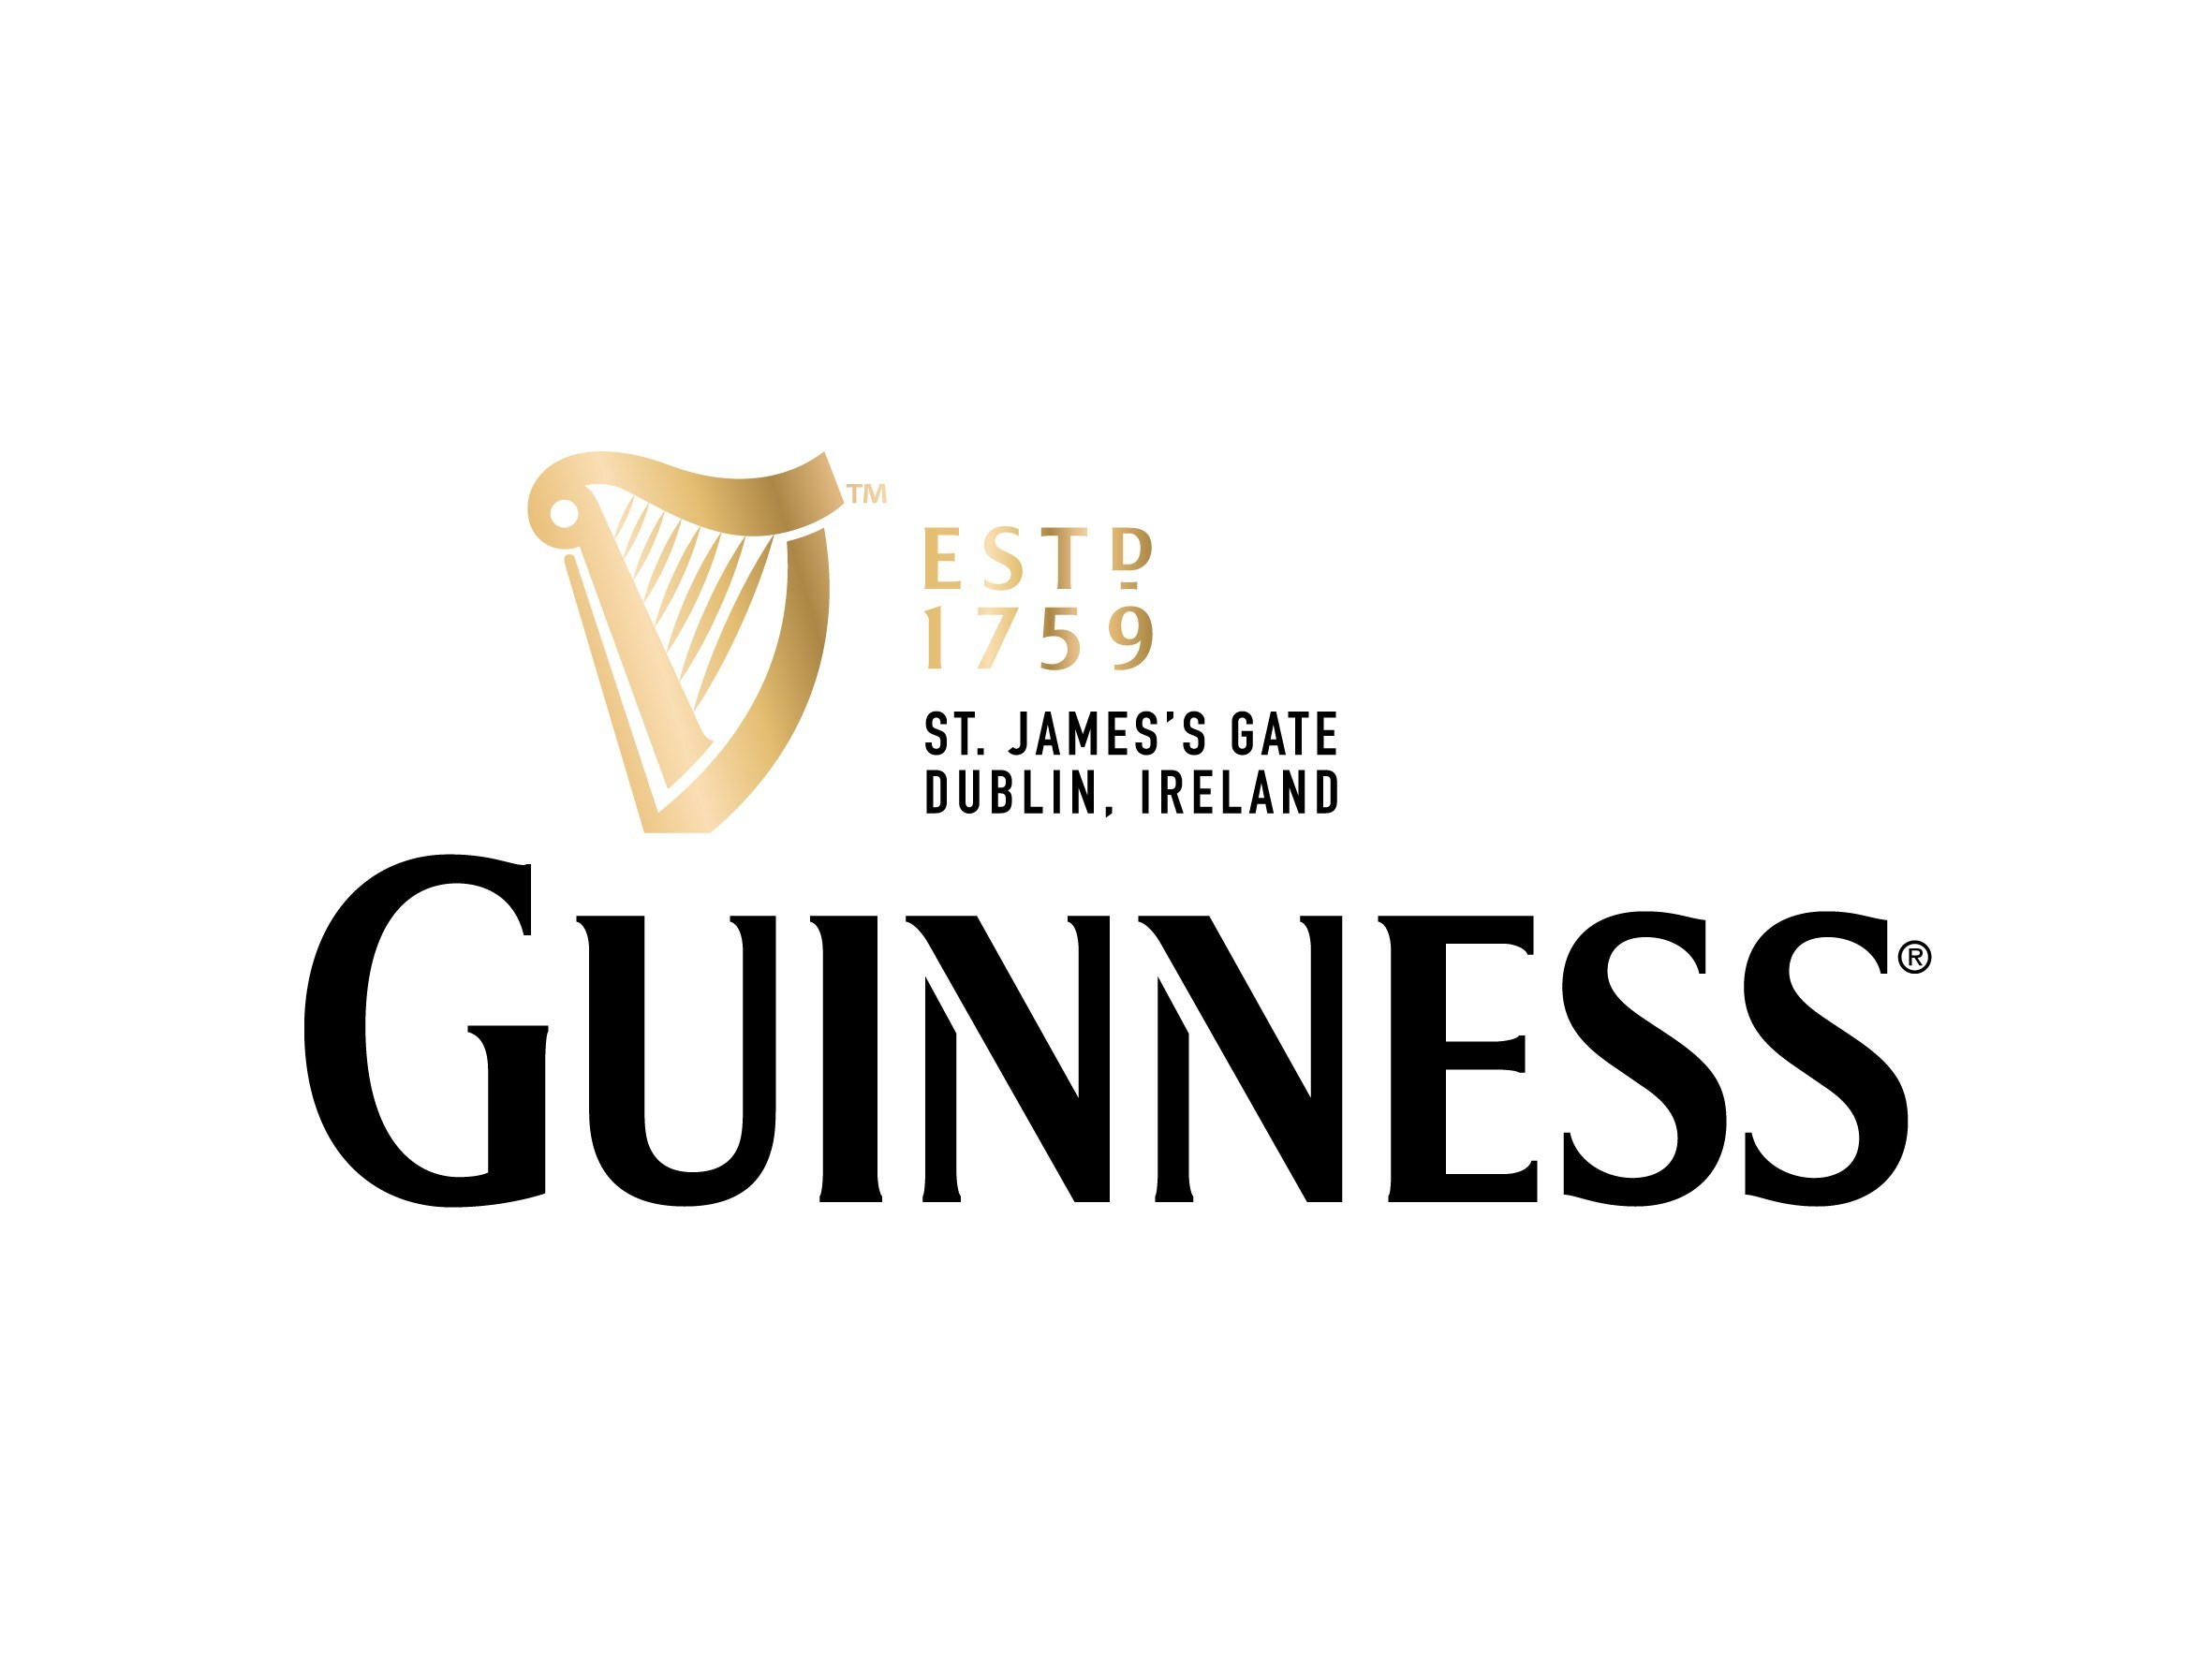 Guinness Celebrates The Foamy Mustache With Charitable Campaign